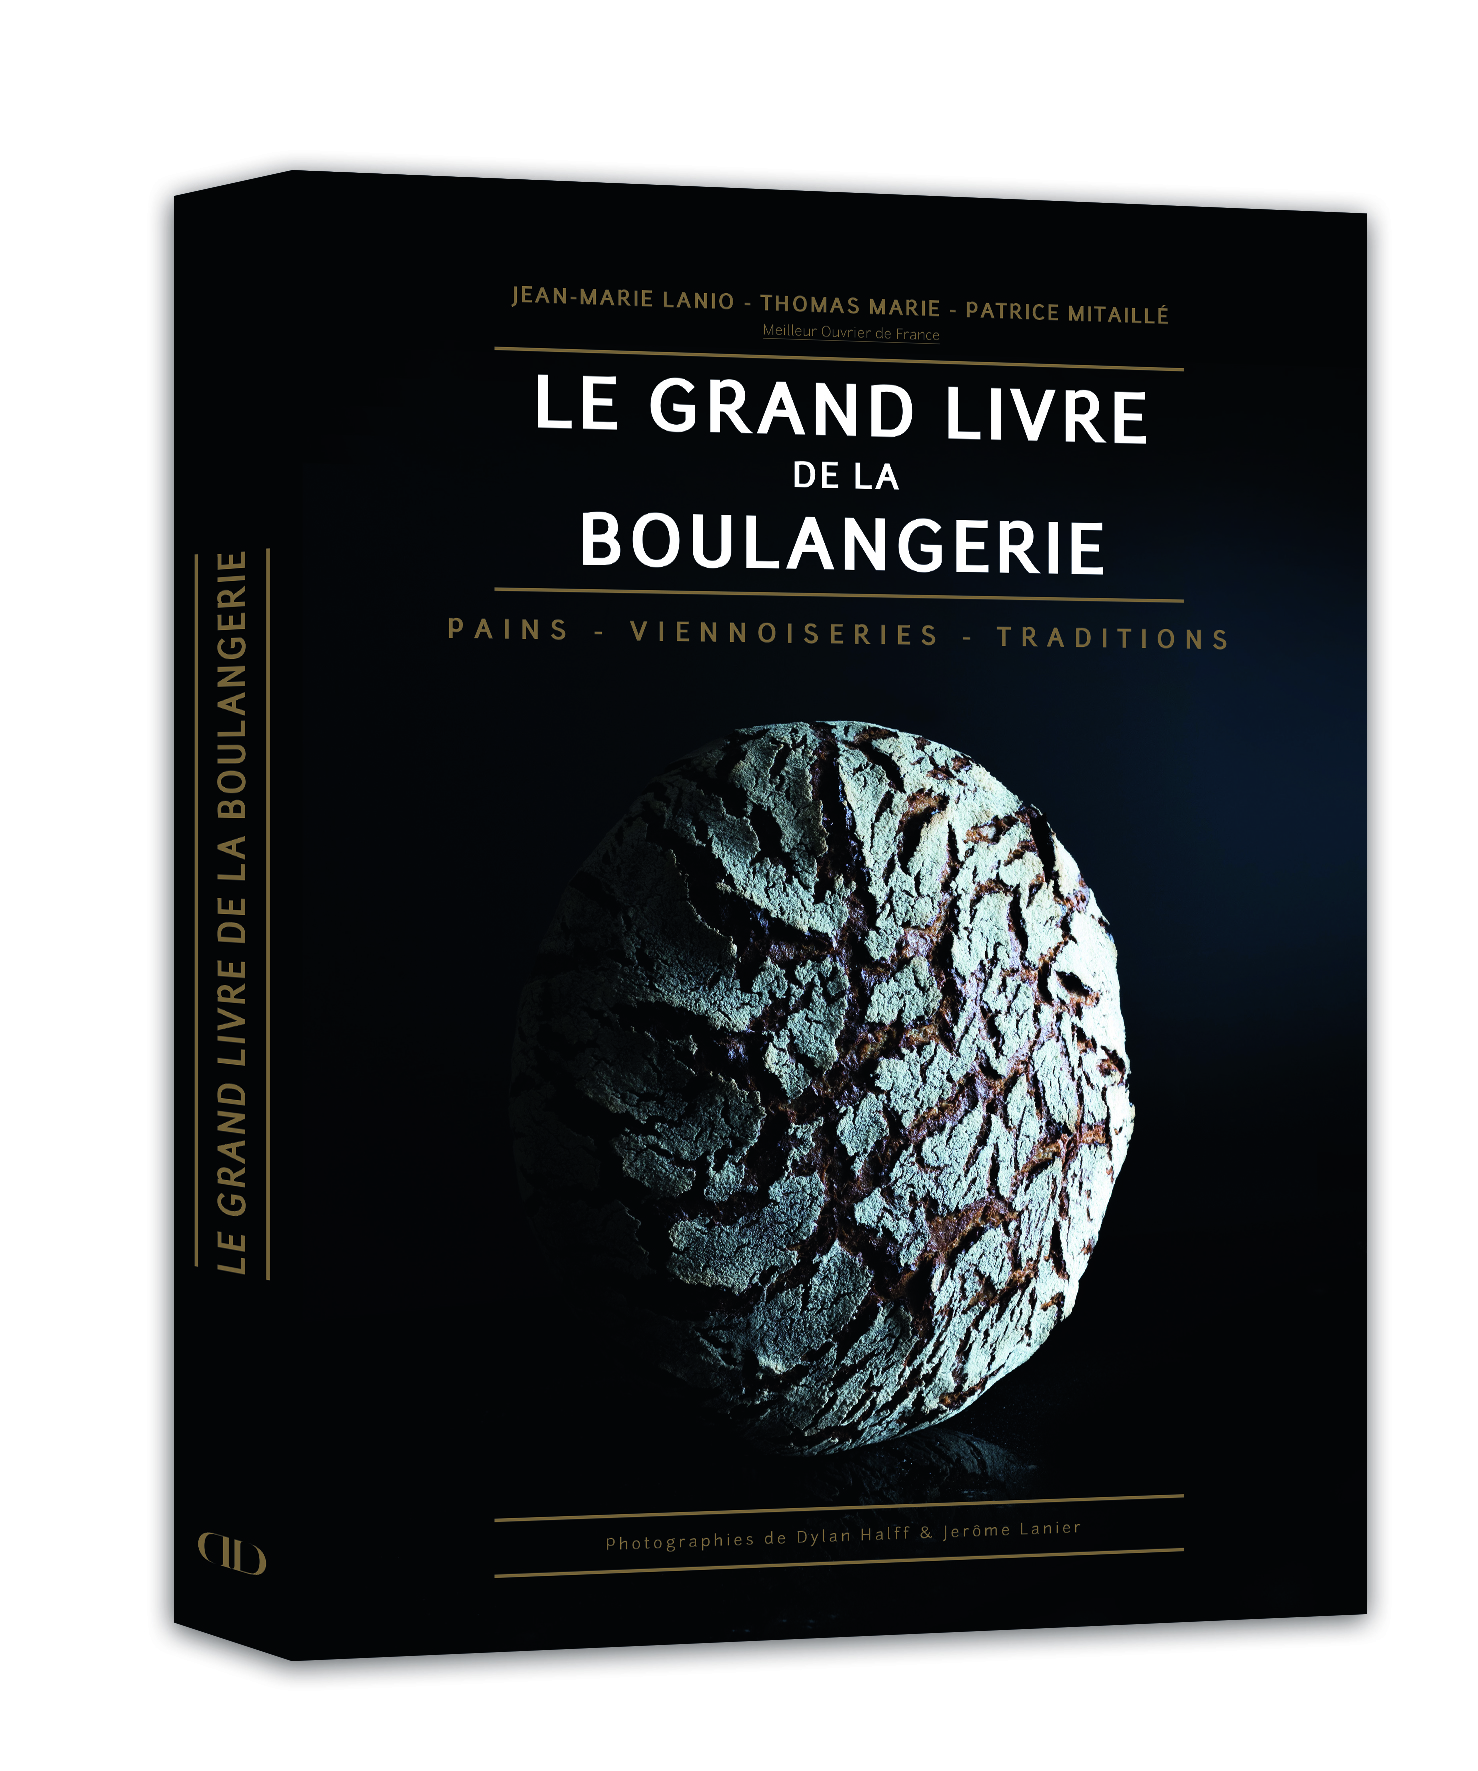 Le grand livre de la boulangerie pains viennoiseries for Le grand livre du minimalisme